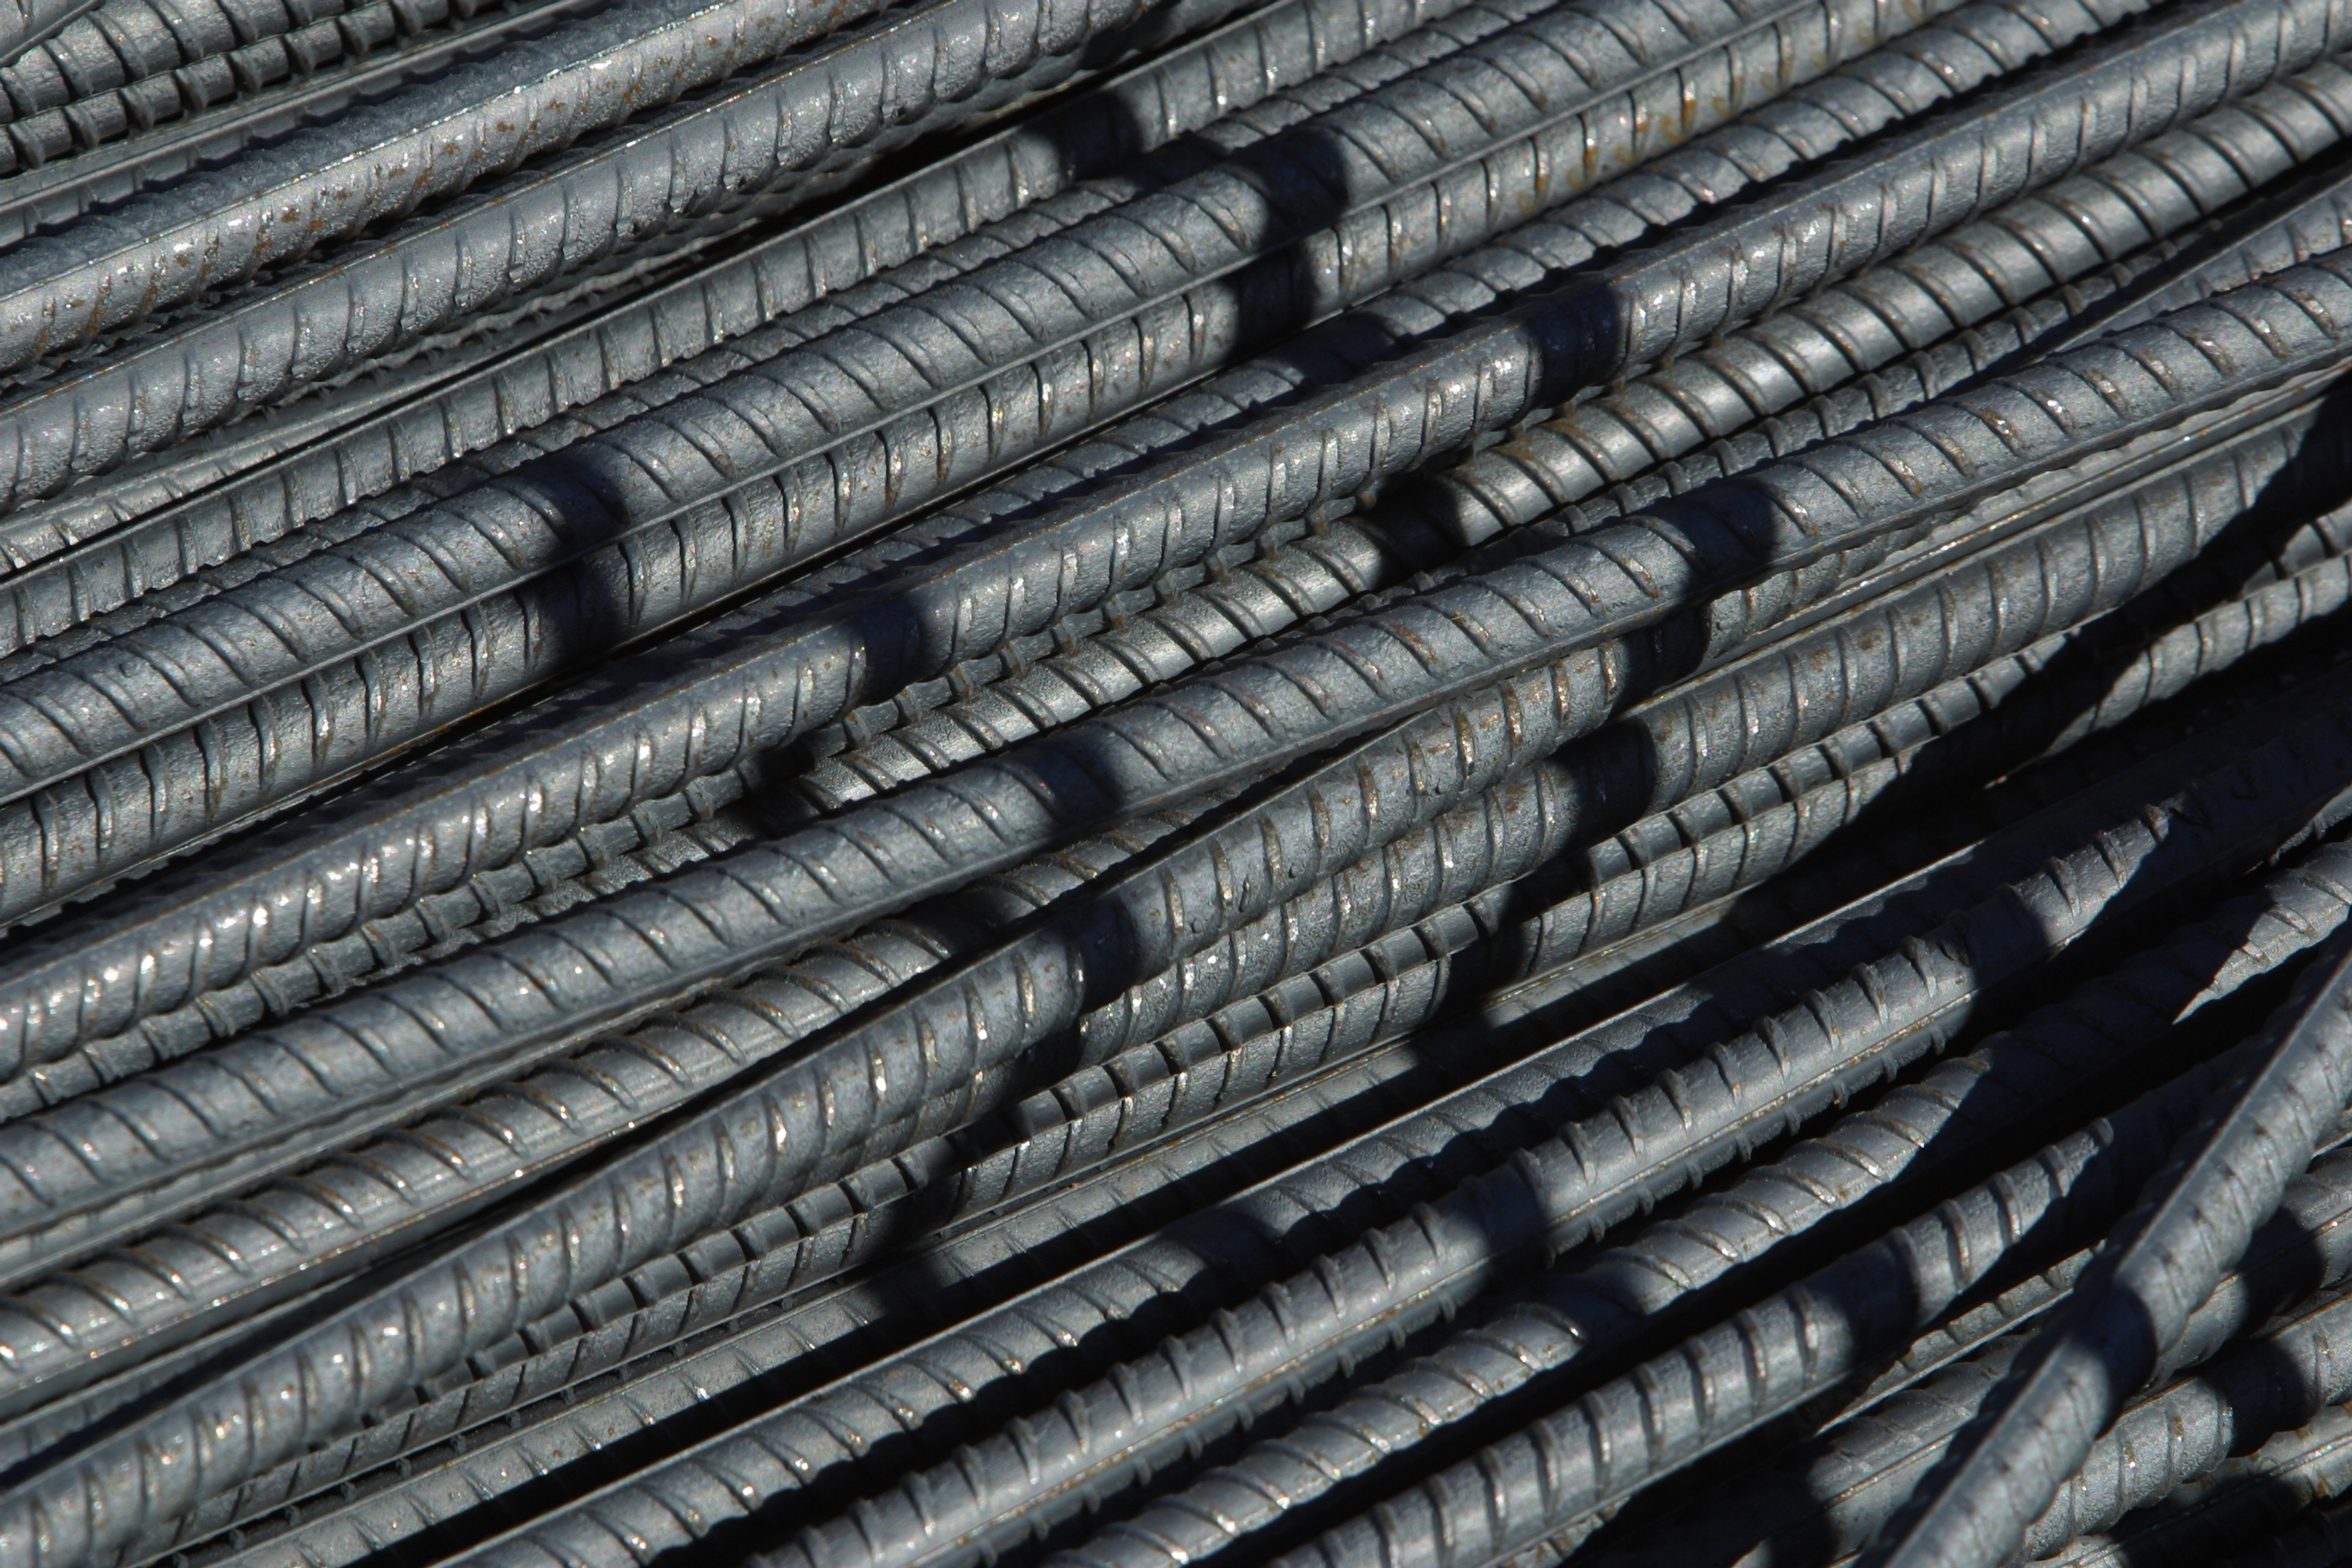 Rebar Size for Slabs